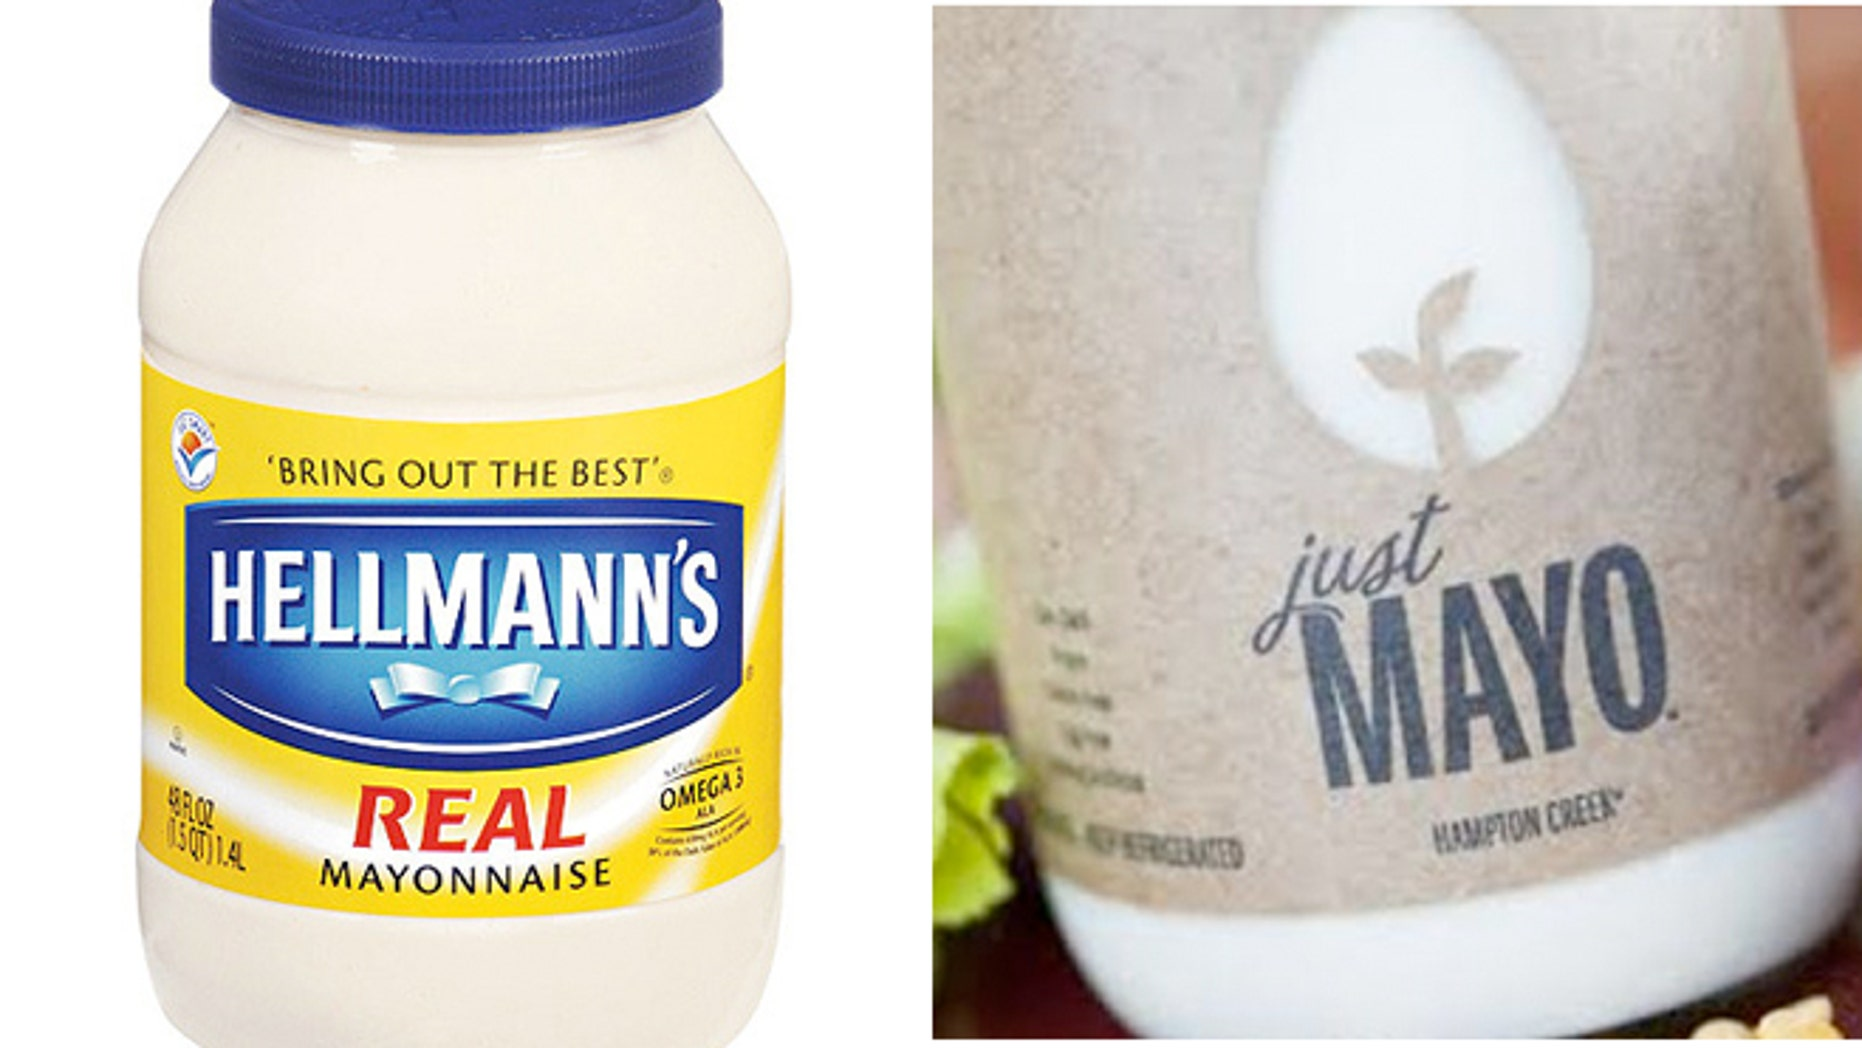 """The maker of Hellman's is suing a California company that uses the word """"Mayo"""" in its sandwich spread name, saying that federal regulators and dictionaries define mayonnaise as a spread that contains eggs."""